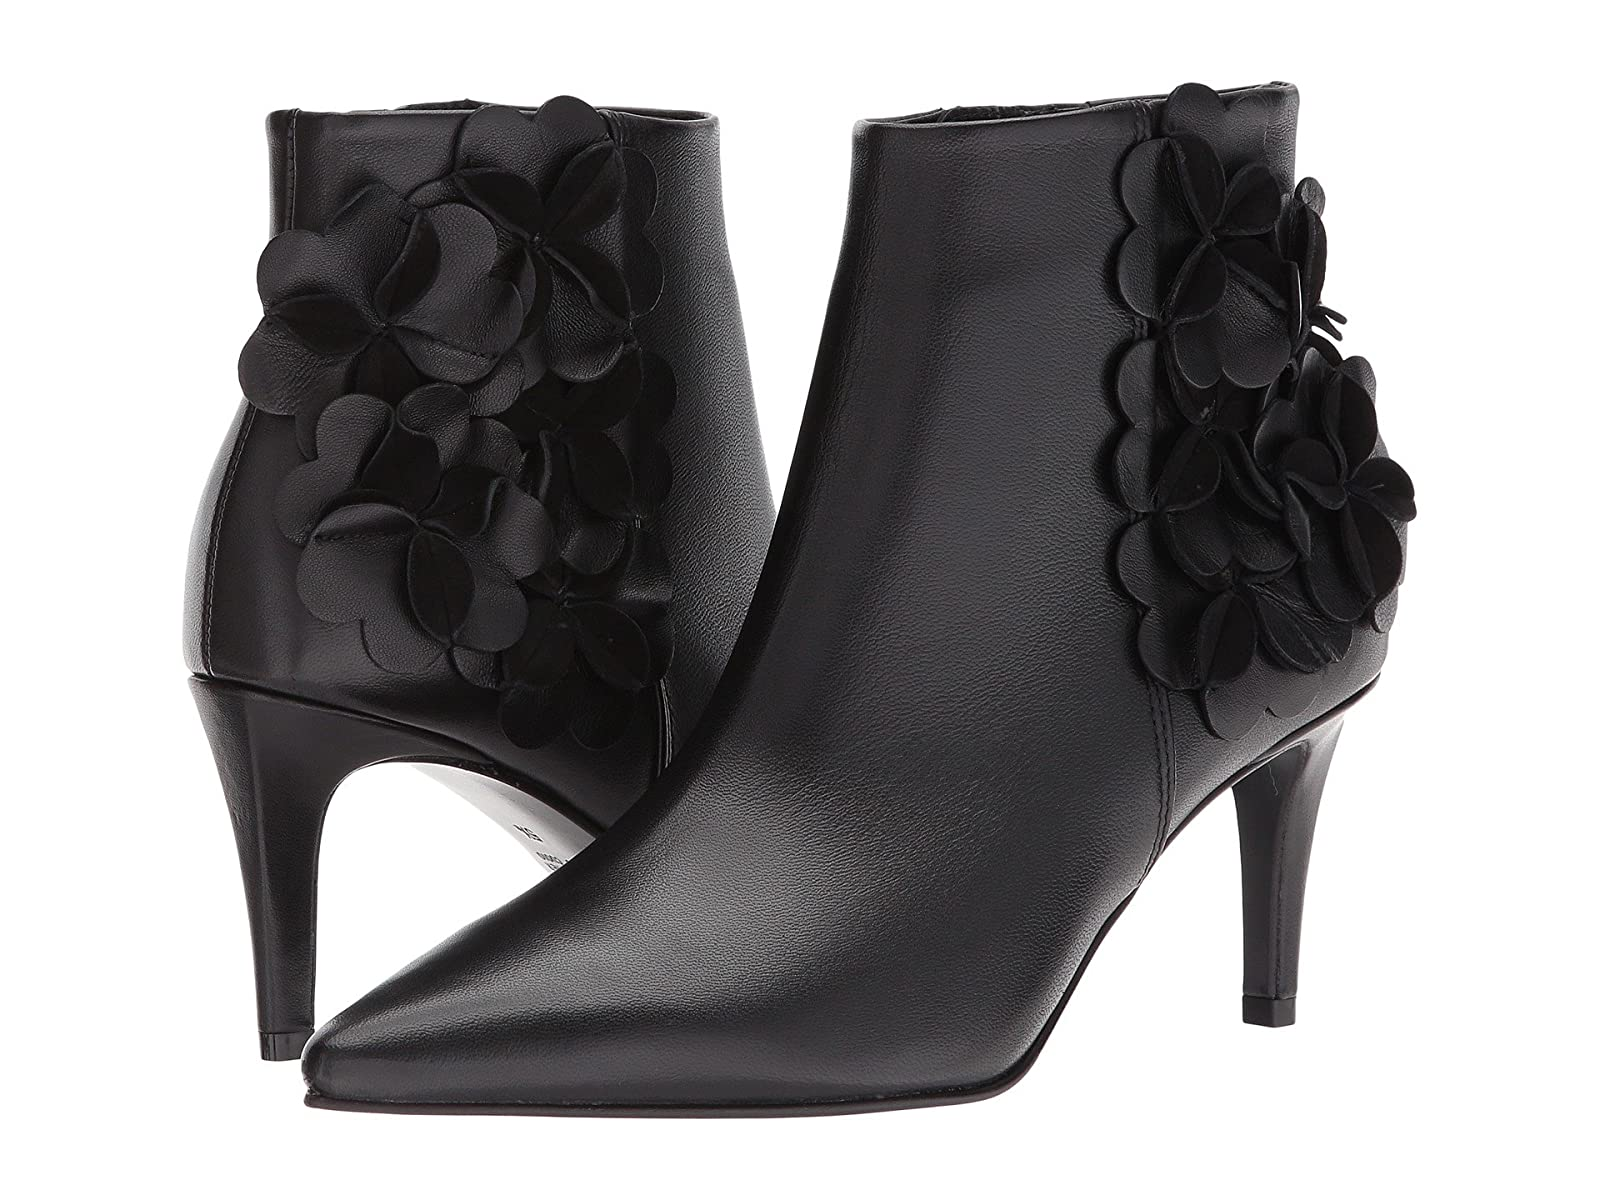 Kennel & Schmenger Liz Floral BootCheap and distinctive eye-catching shoes